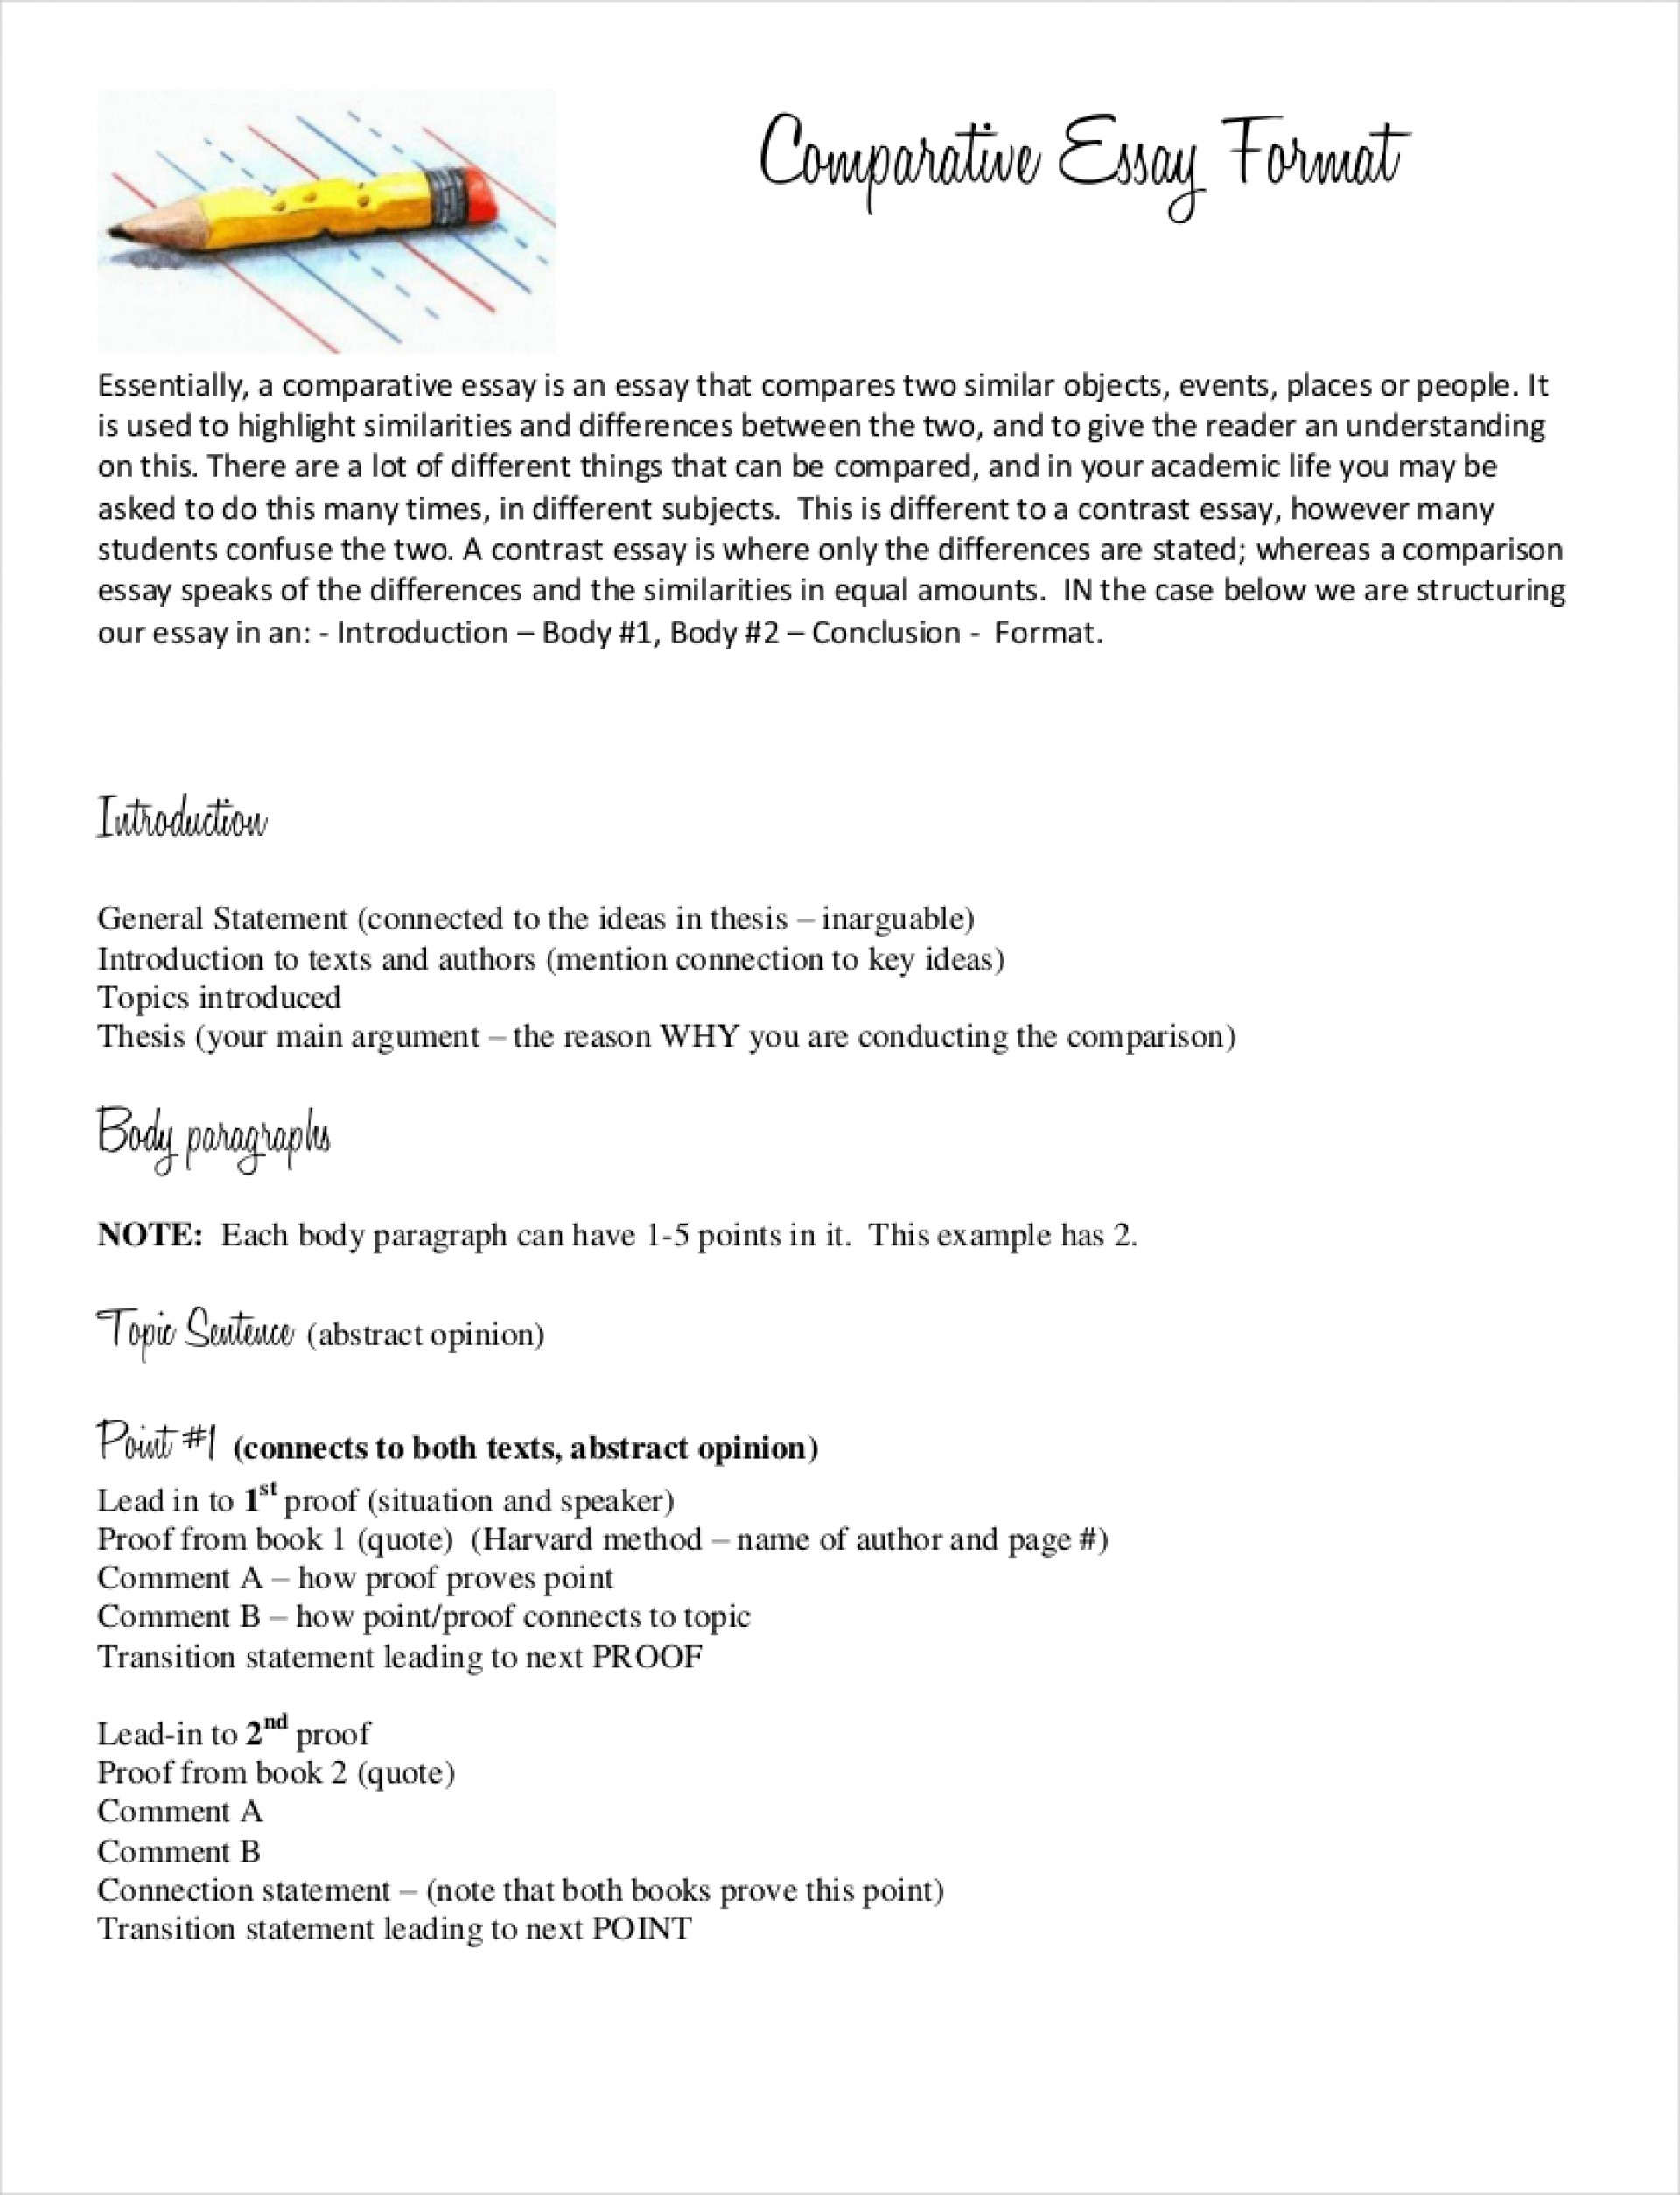 010 Essay Example Comparative Samples Free Pdf Format Download How To Write Poetry Introduction Sample Fo Contrast Vce Incredible A Comparison Compare Thesis 1920